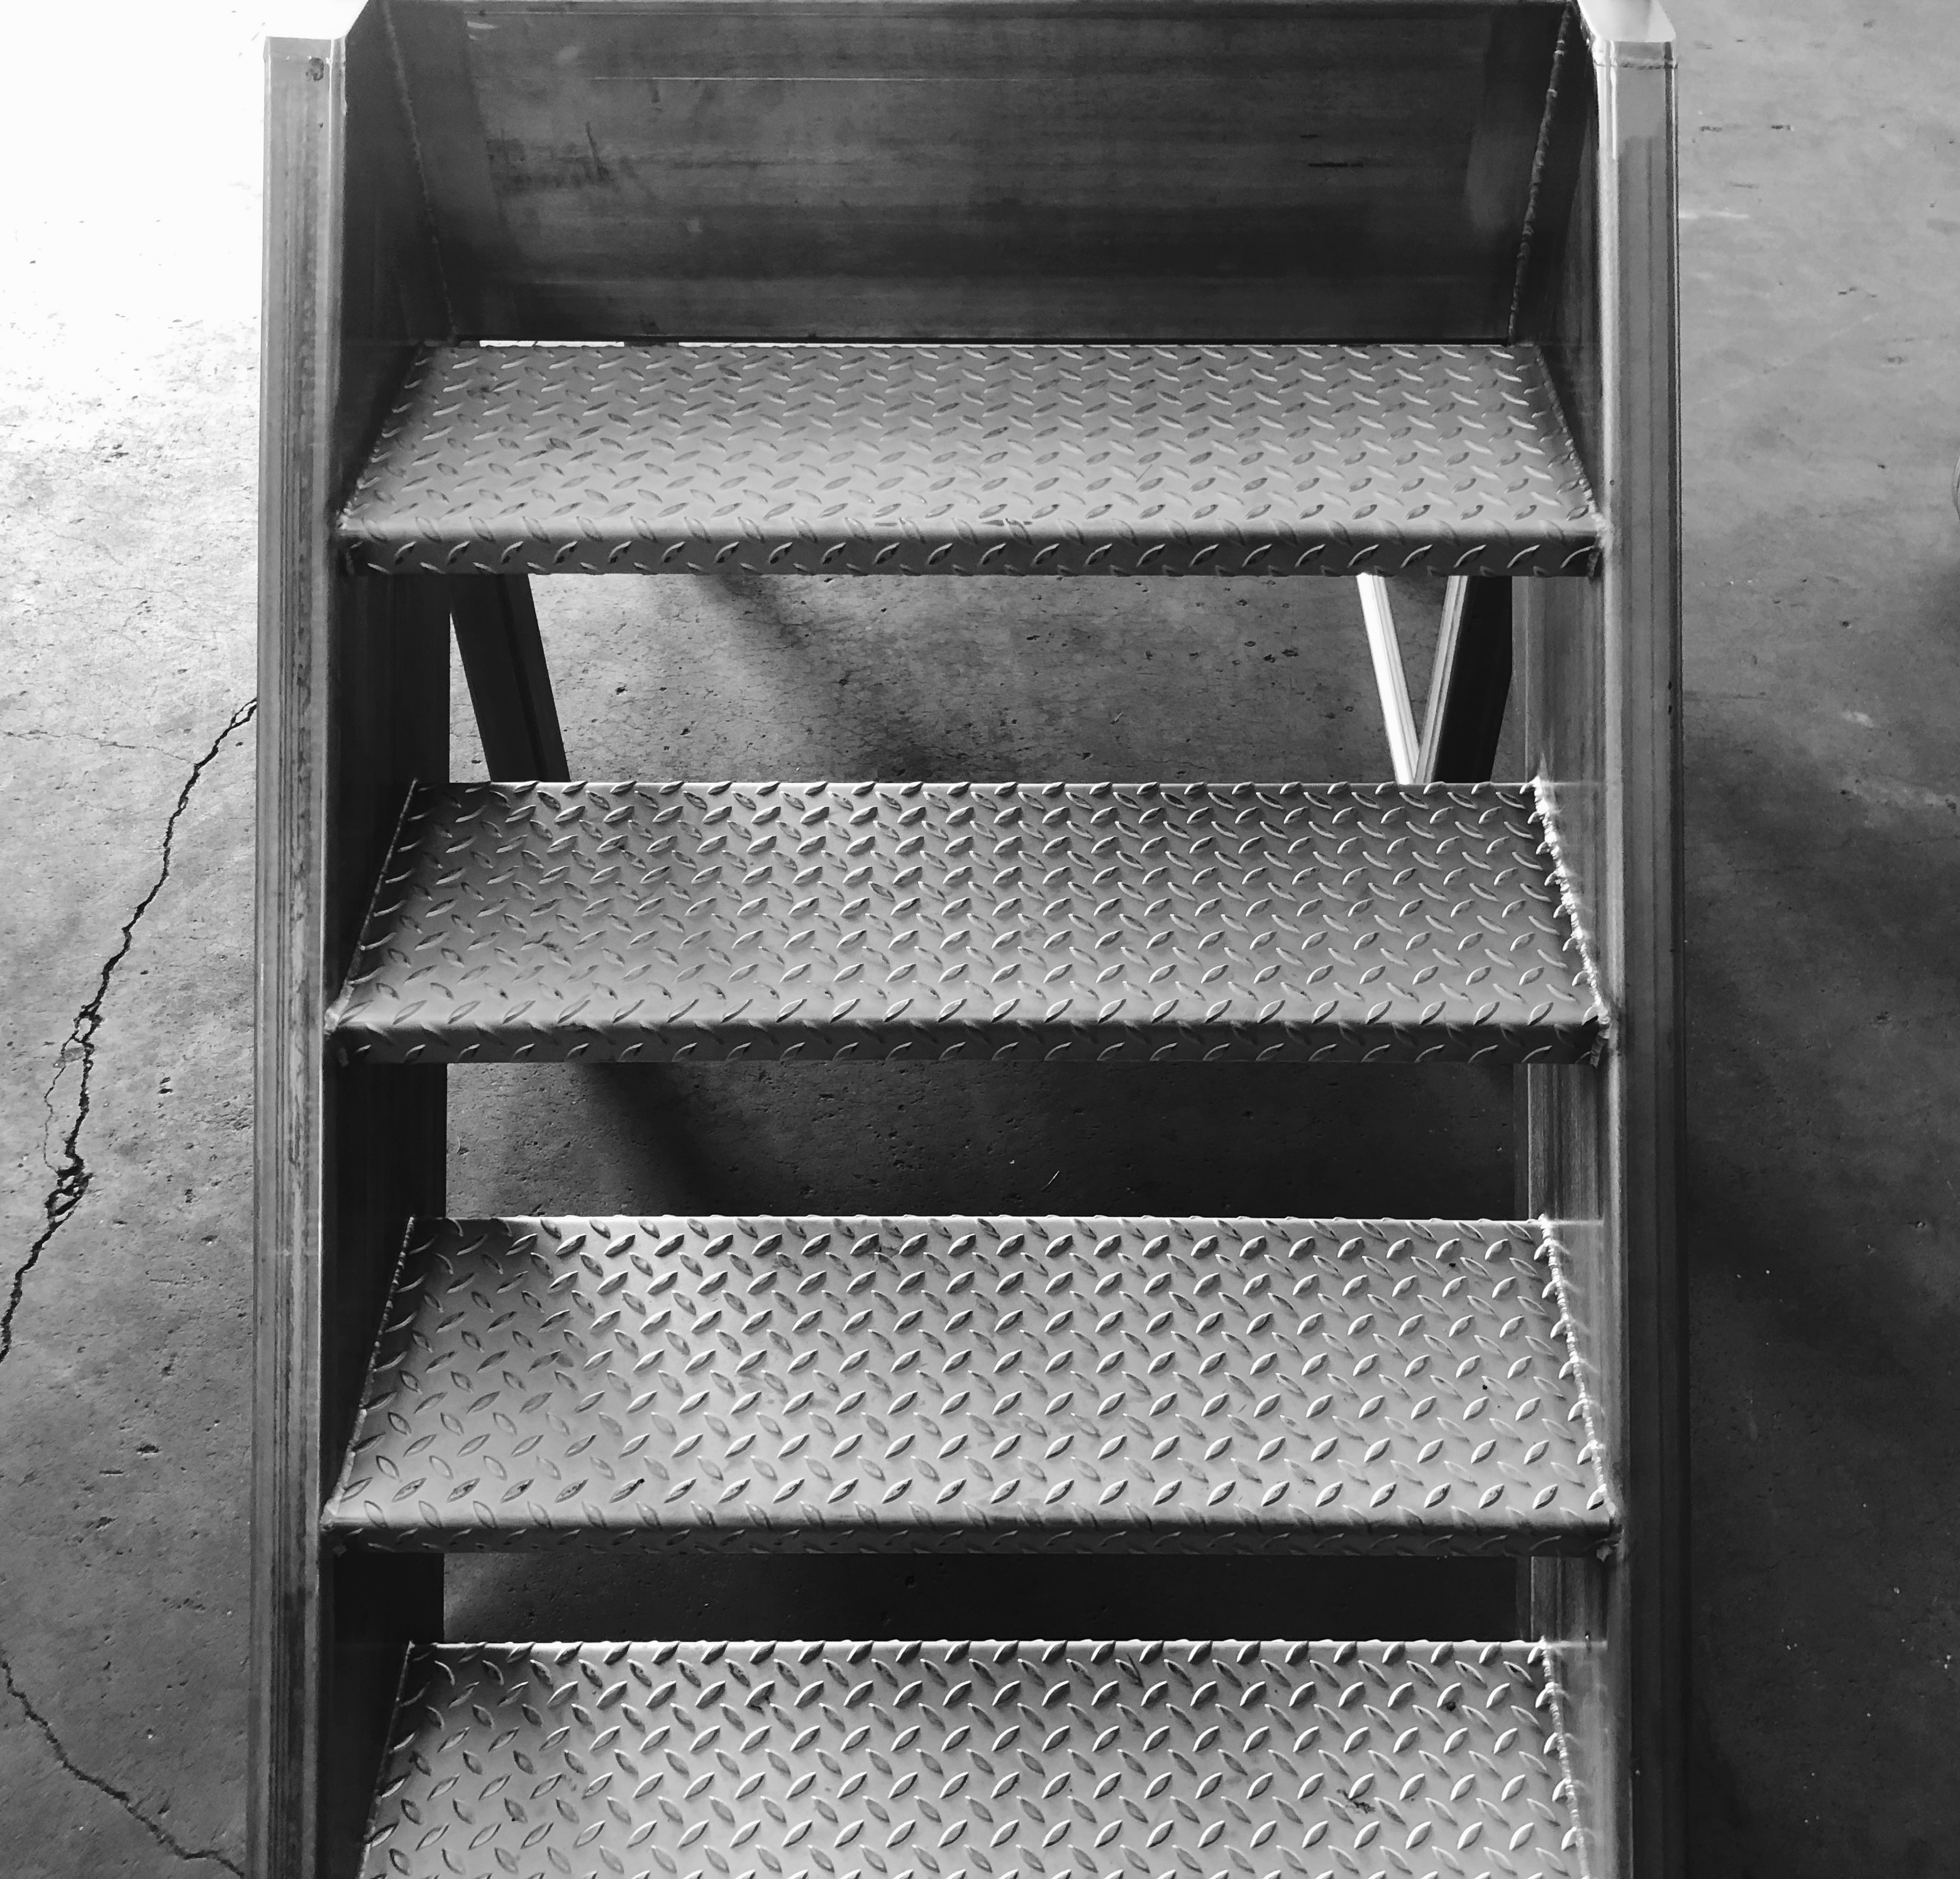 Production Room Access Platforms and Stairs